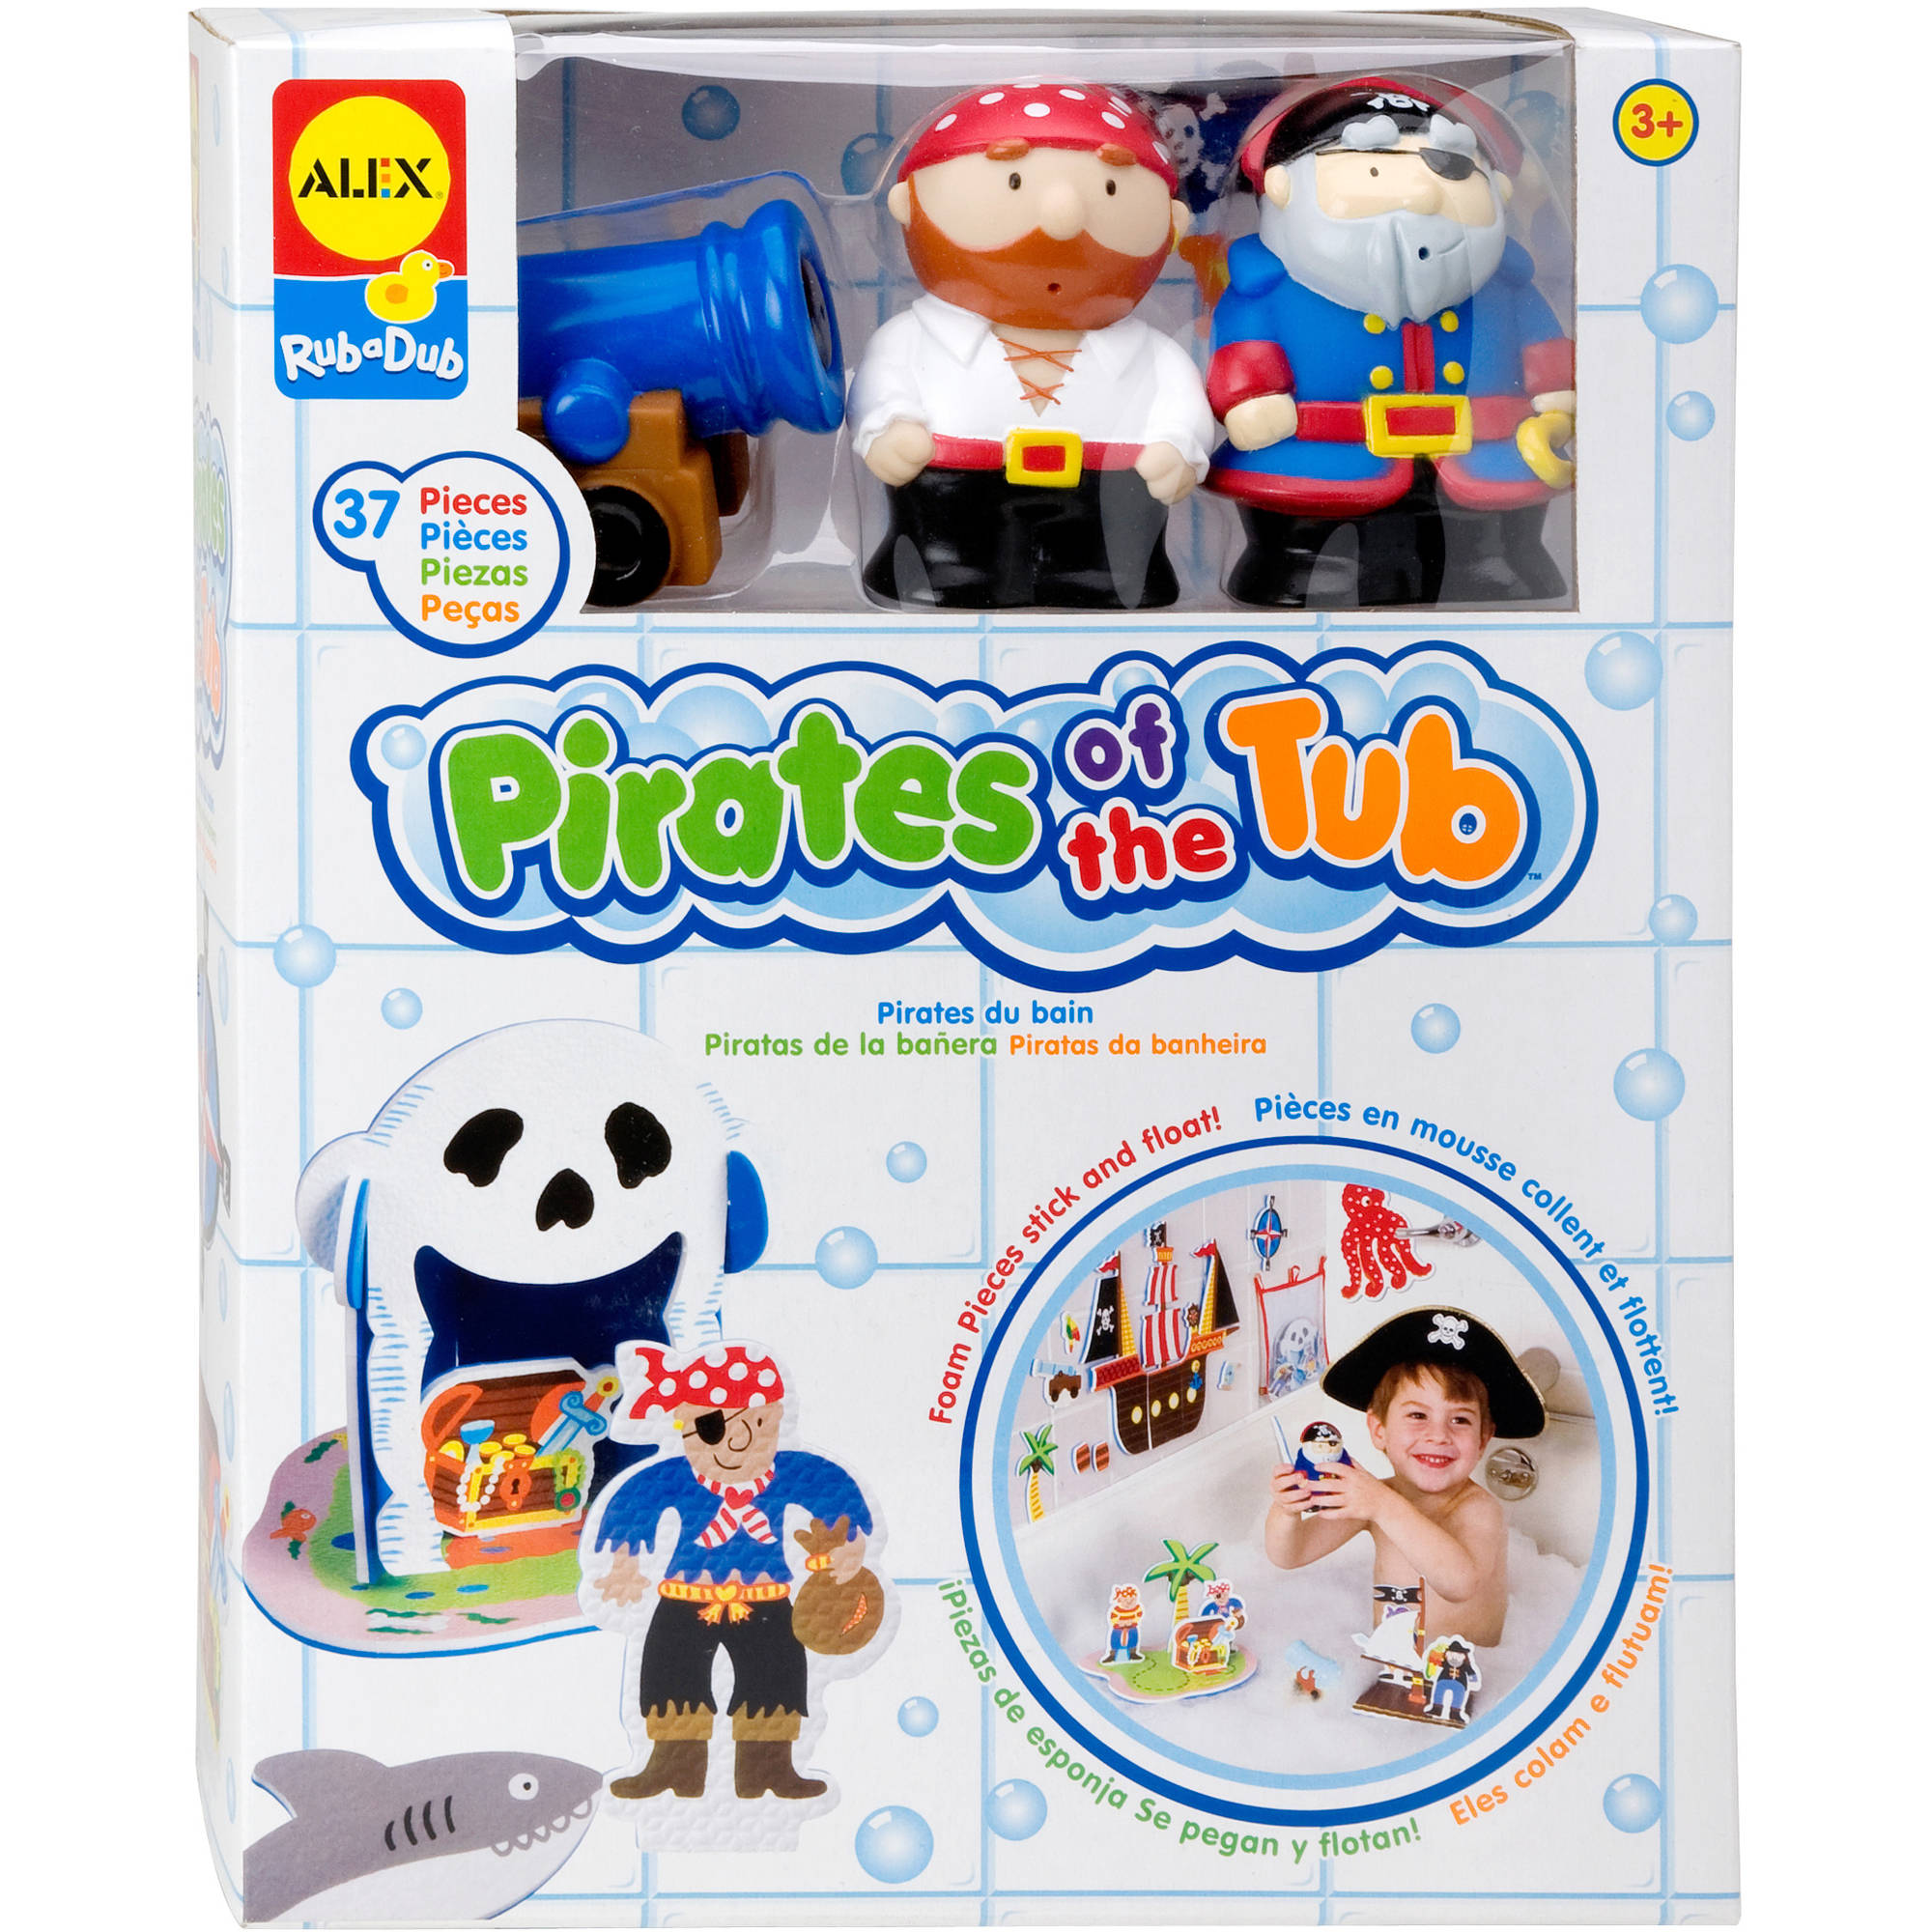 Alex Rub-a-Dub - Pirates in the Tub Bath Toy